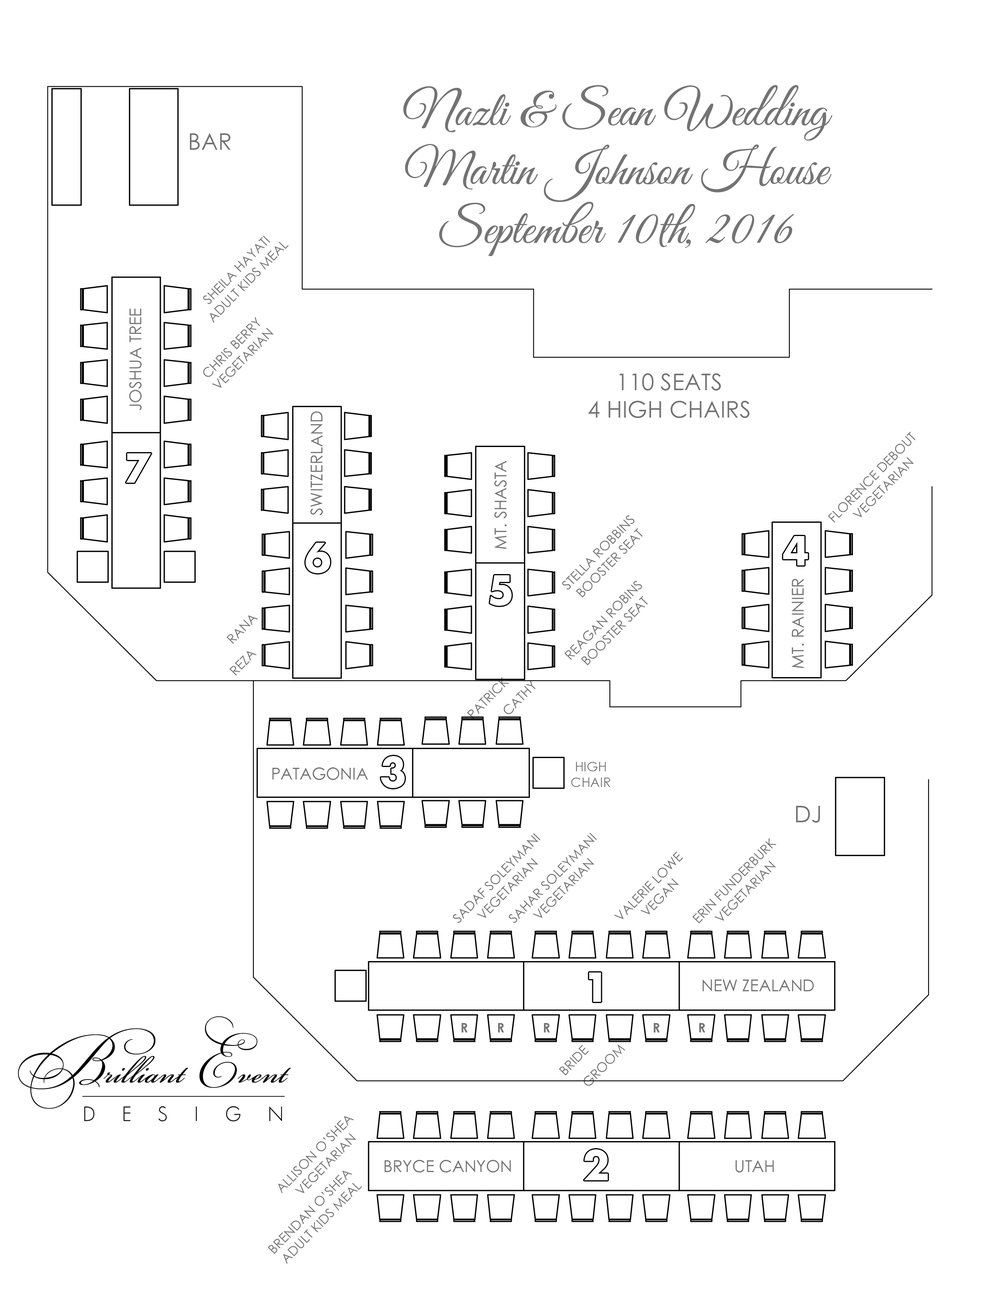 Martin Johnson House Layout.jpg